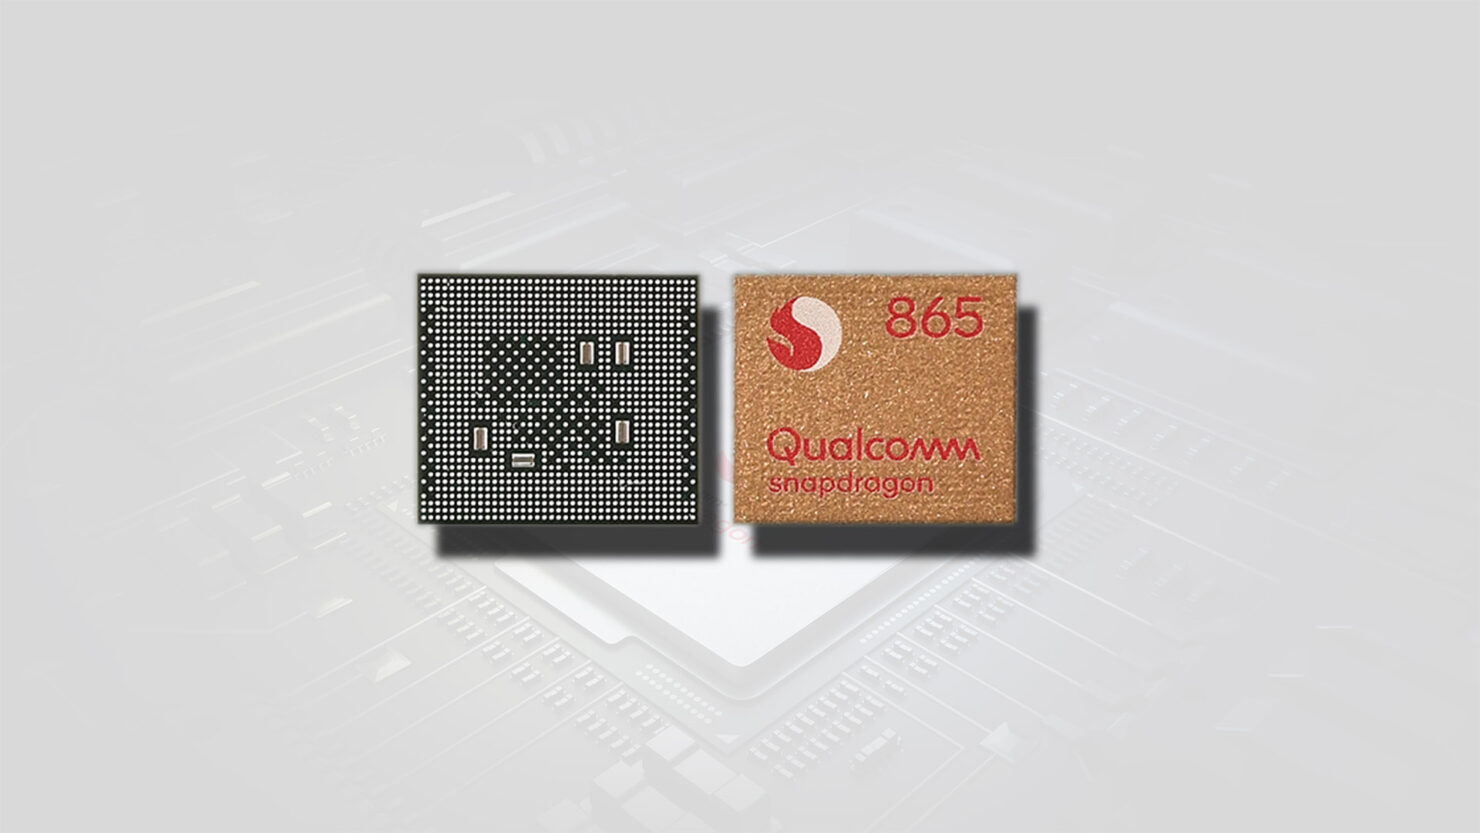 Qualcomm Snapdragon 865 Flagships From Various OEMs Will Arrive in 2020